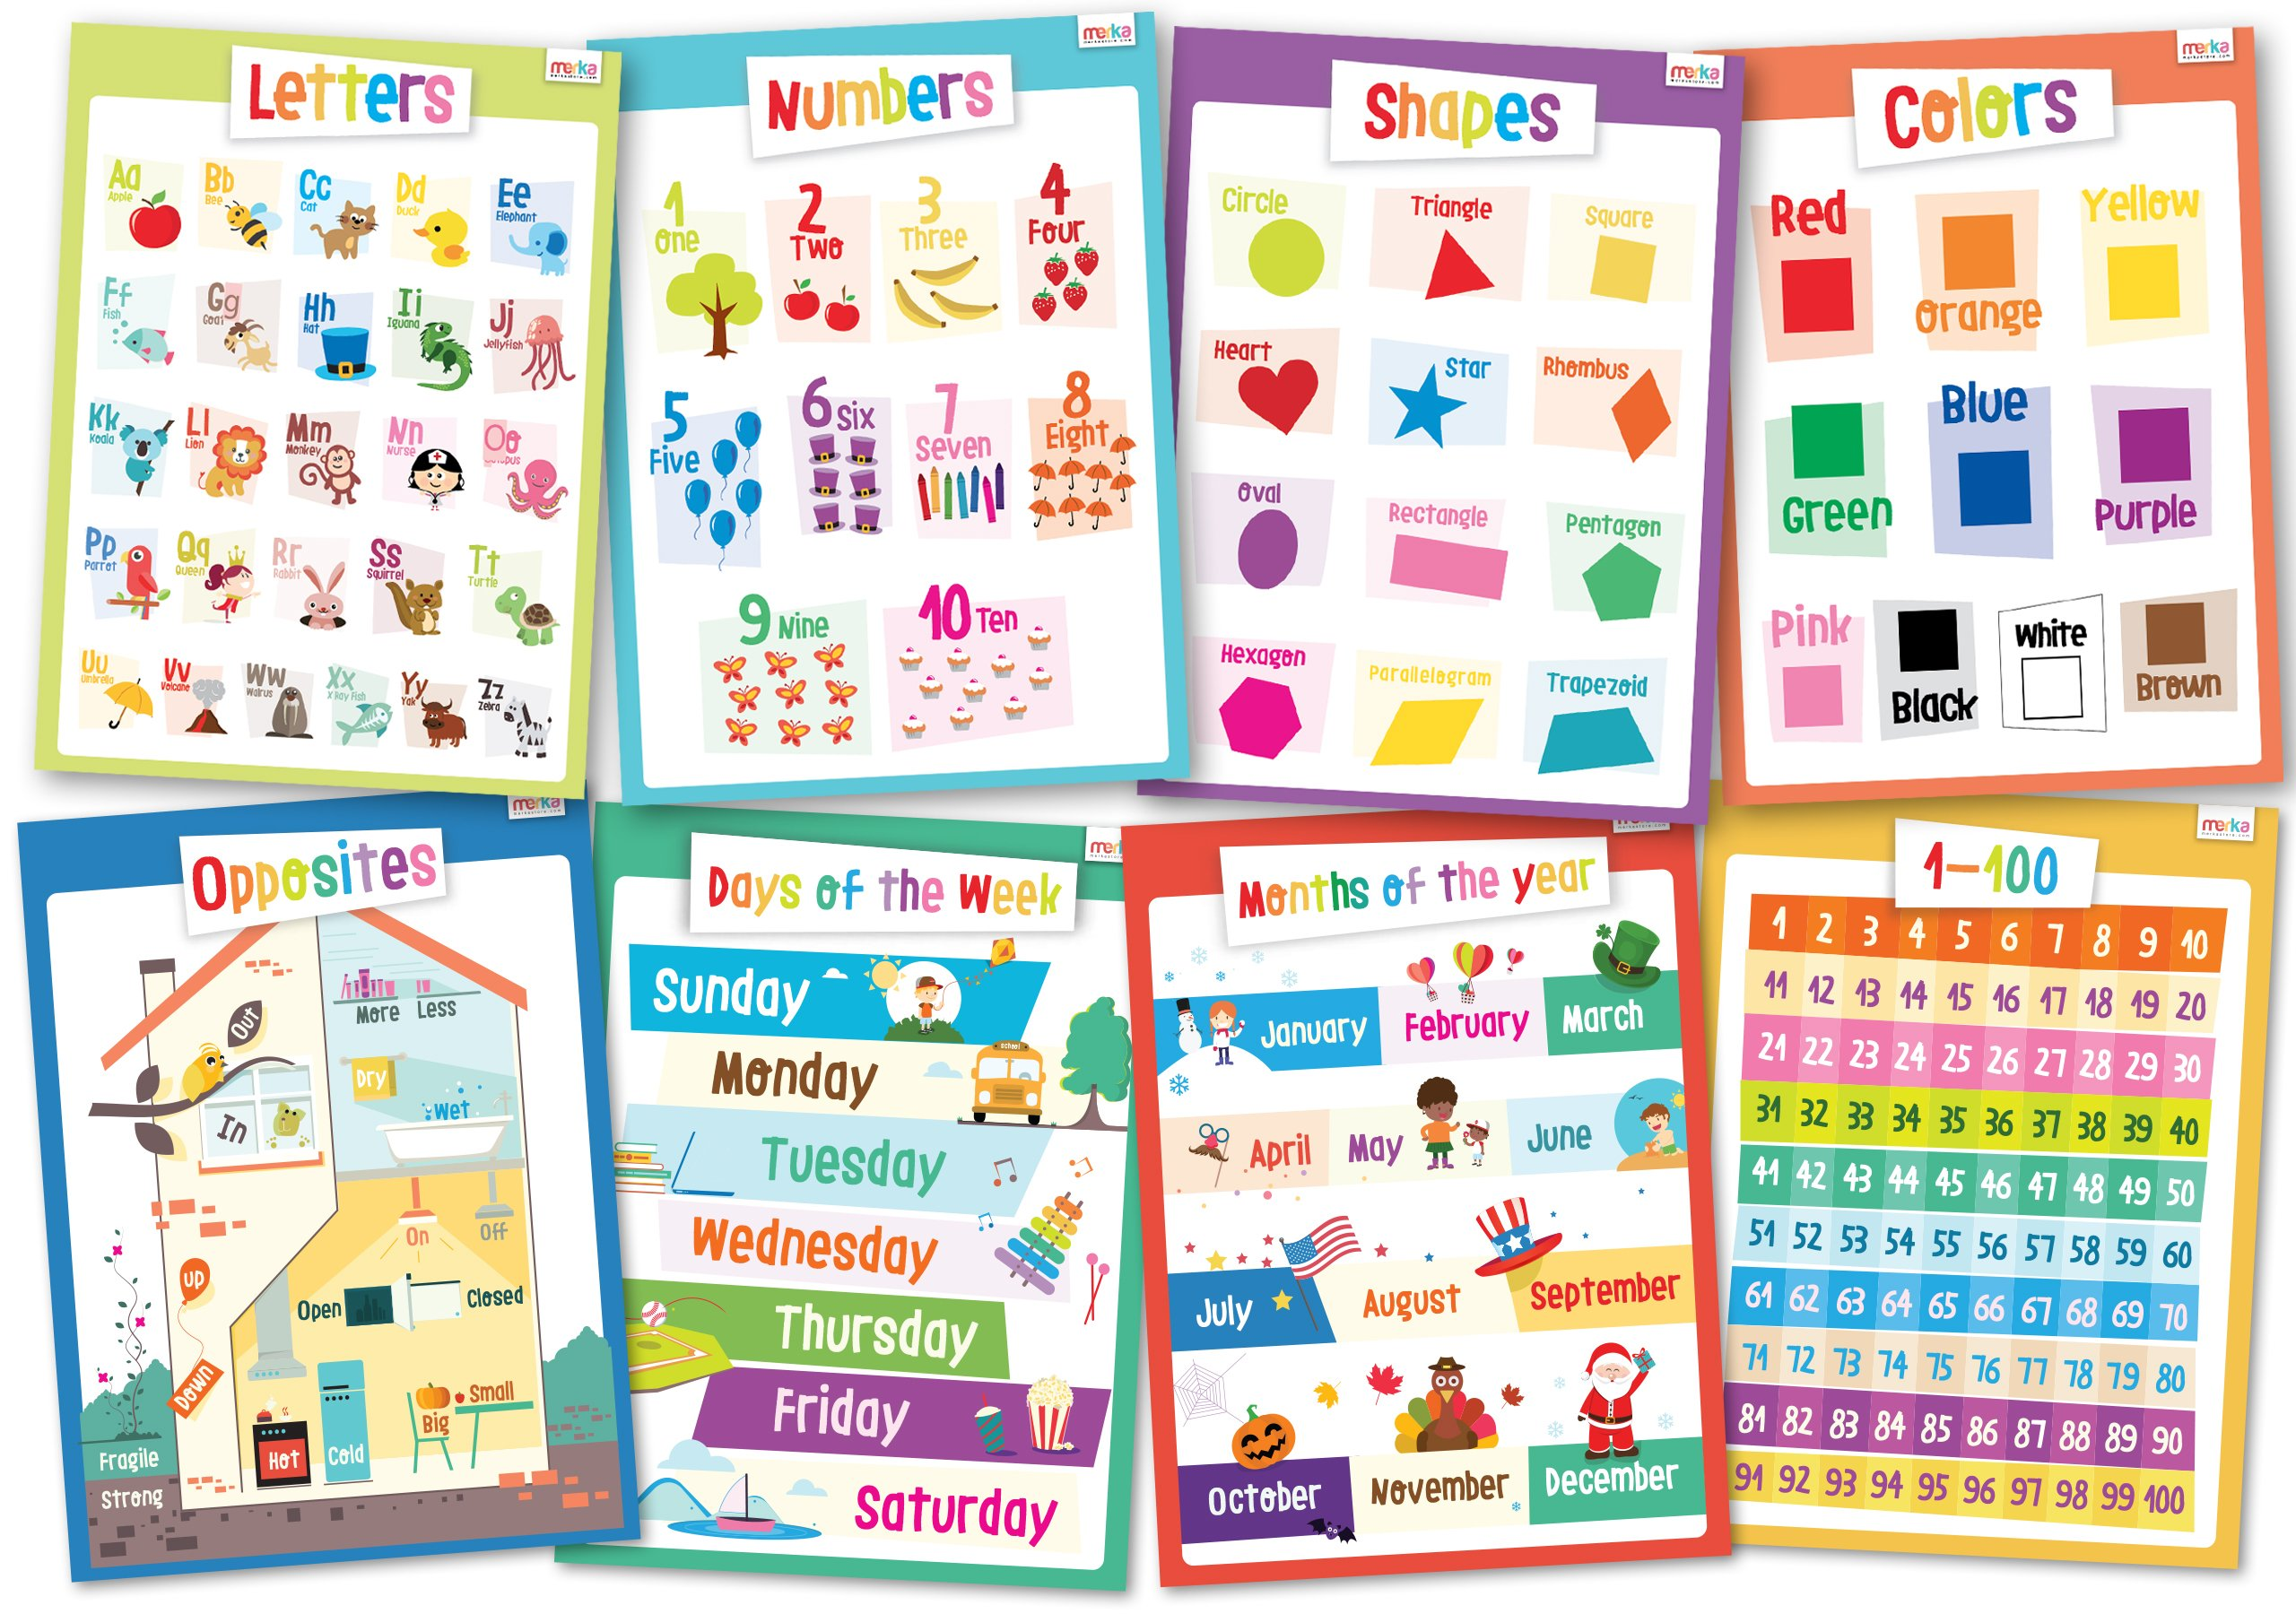 8 Educational Posters for Kids - Perfect for Kids Rooms or Schools Classrooms - Size 17x22 - Toddler Set